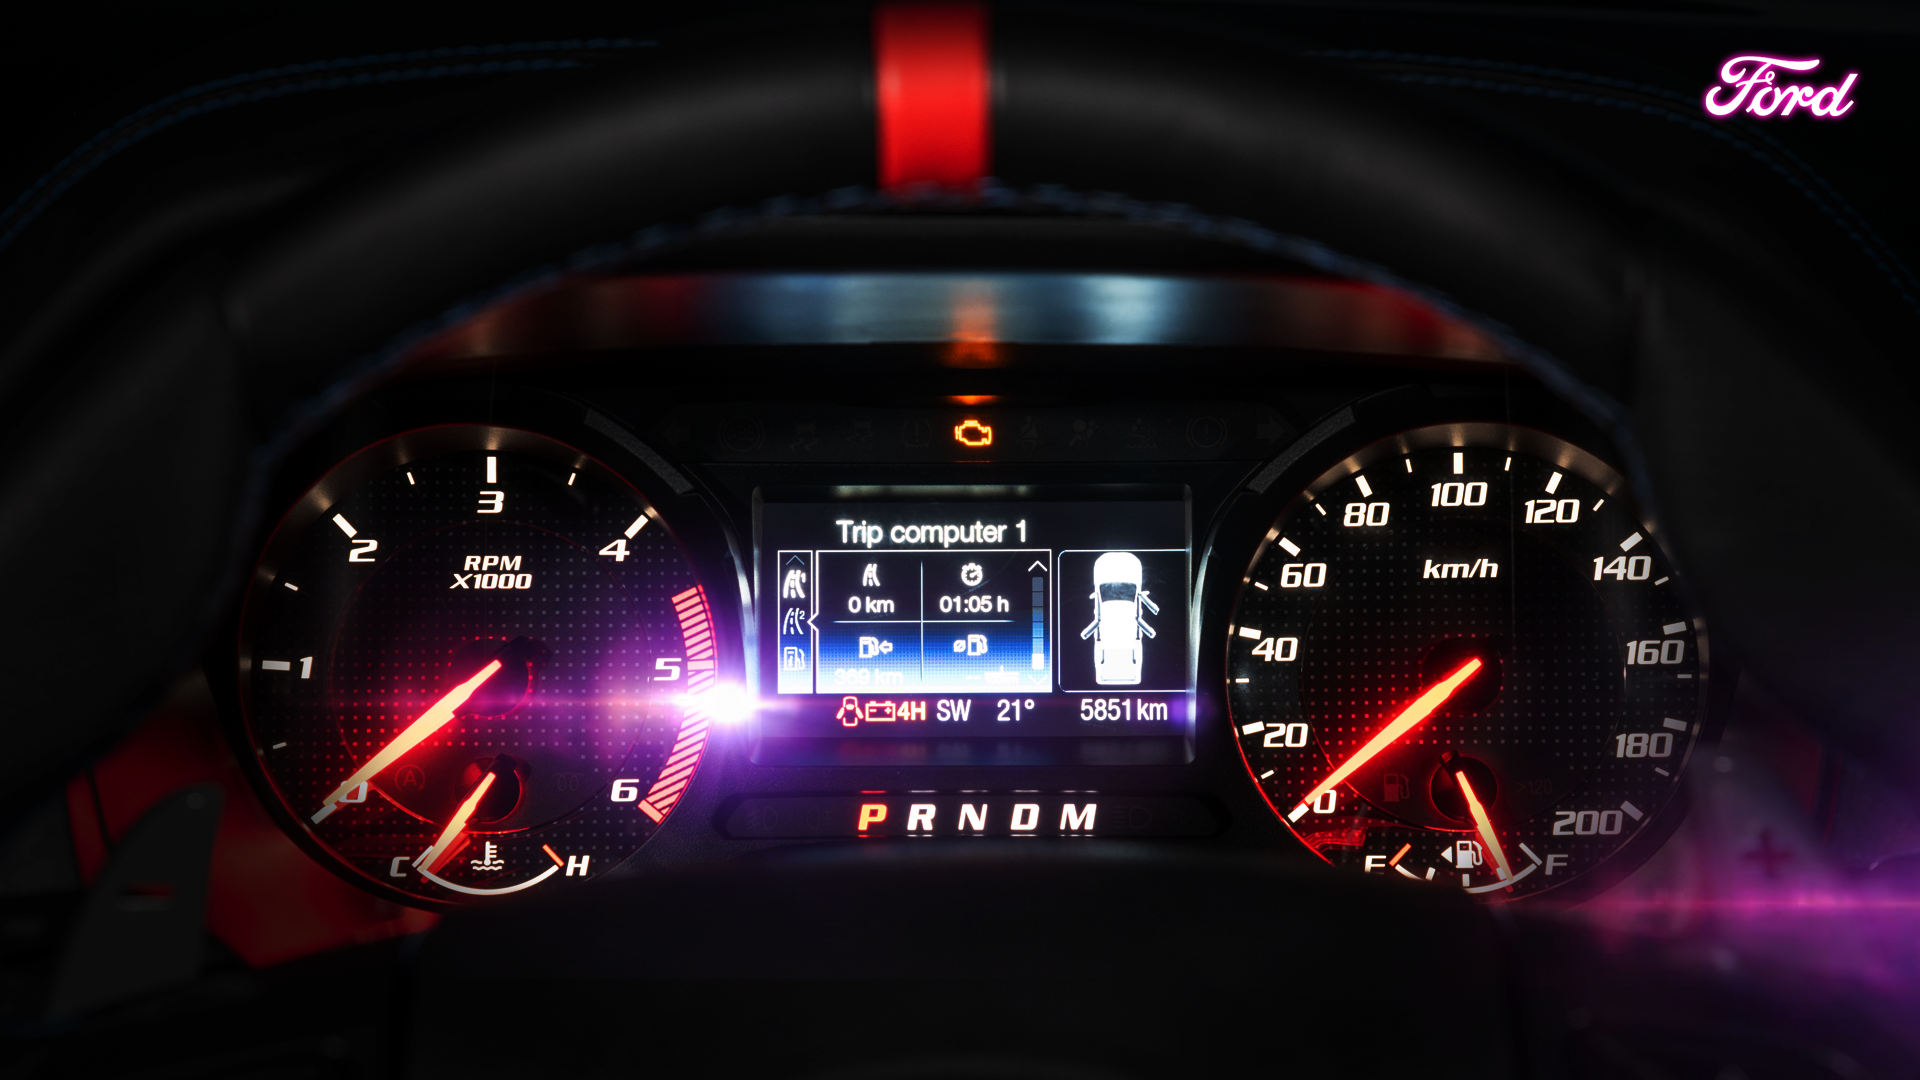 Ford Interior Background Wallpaper Images